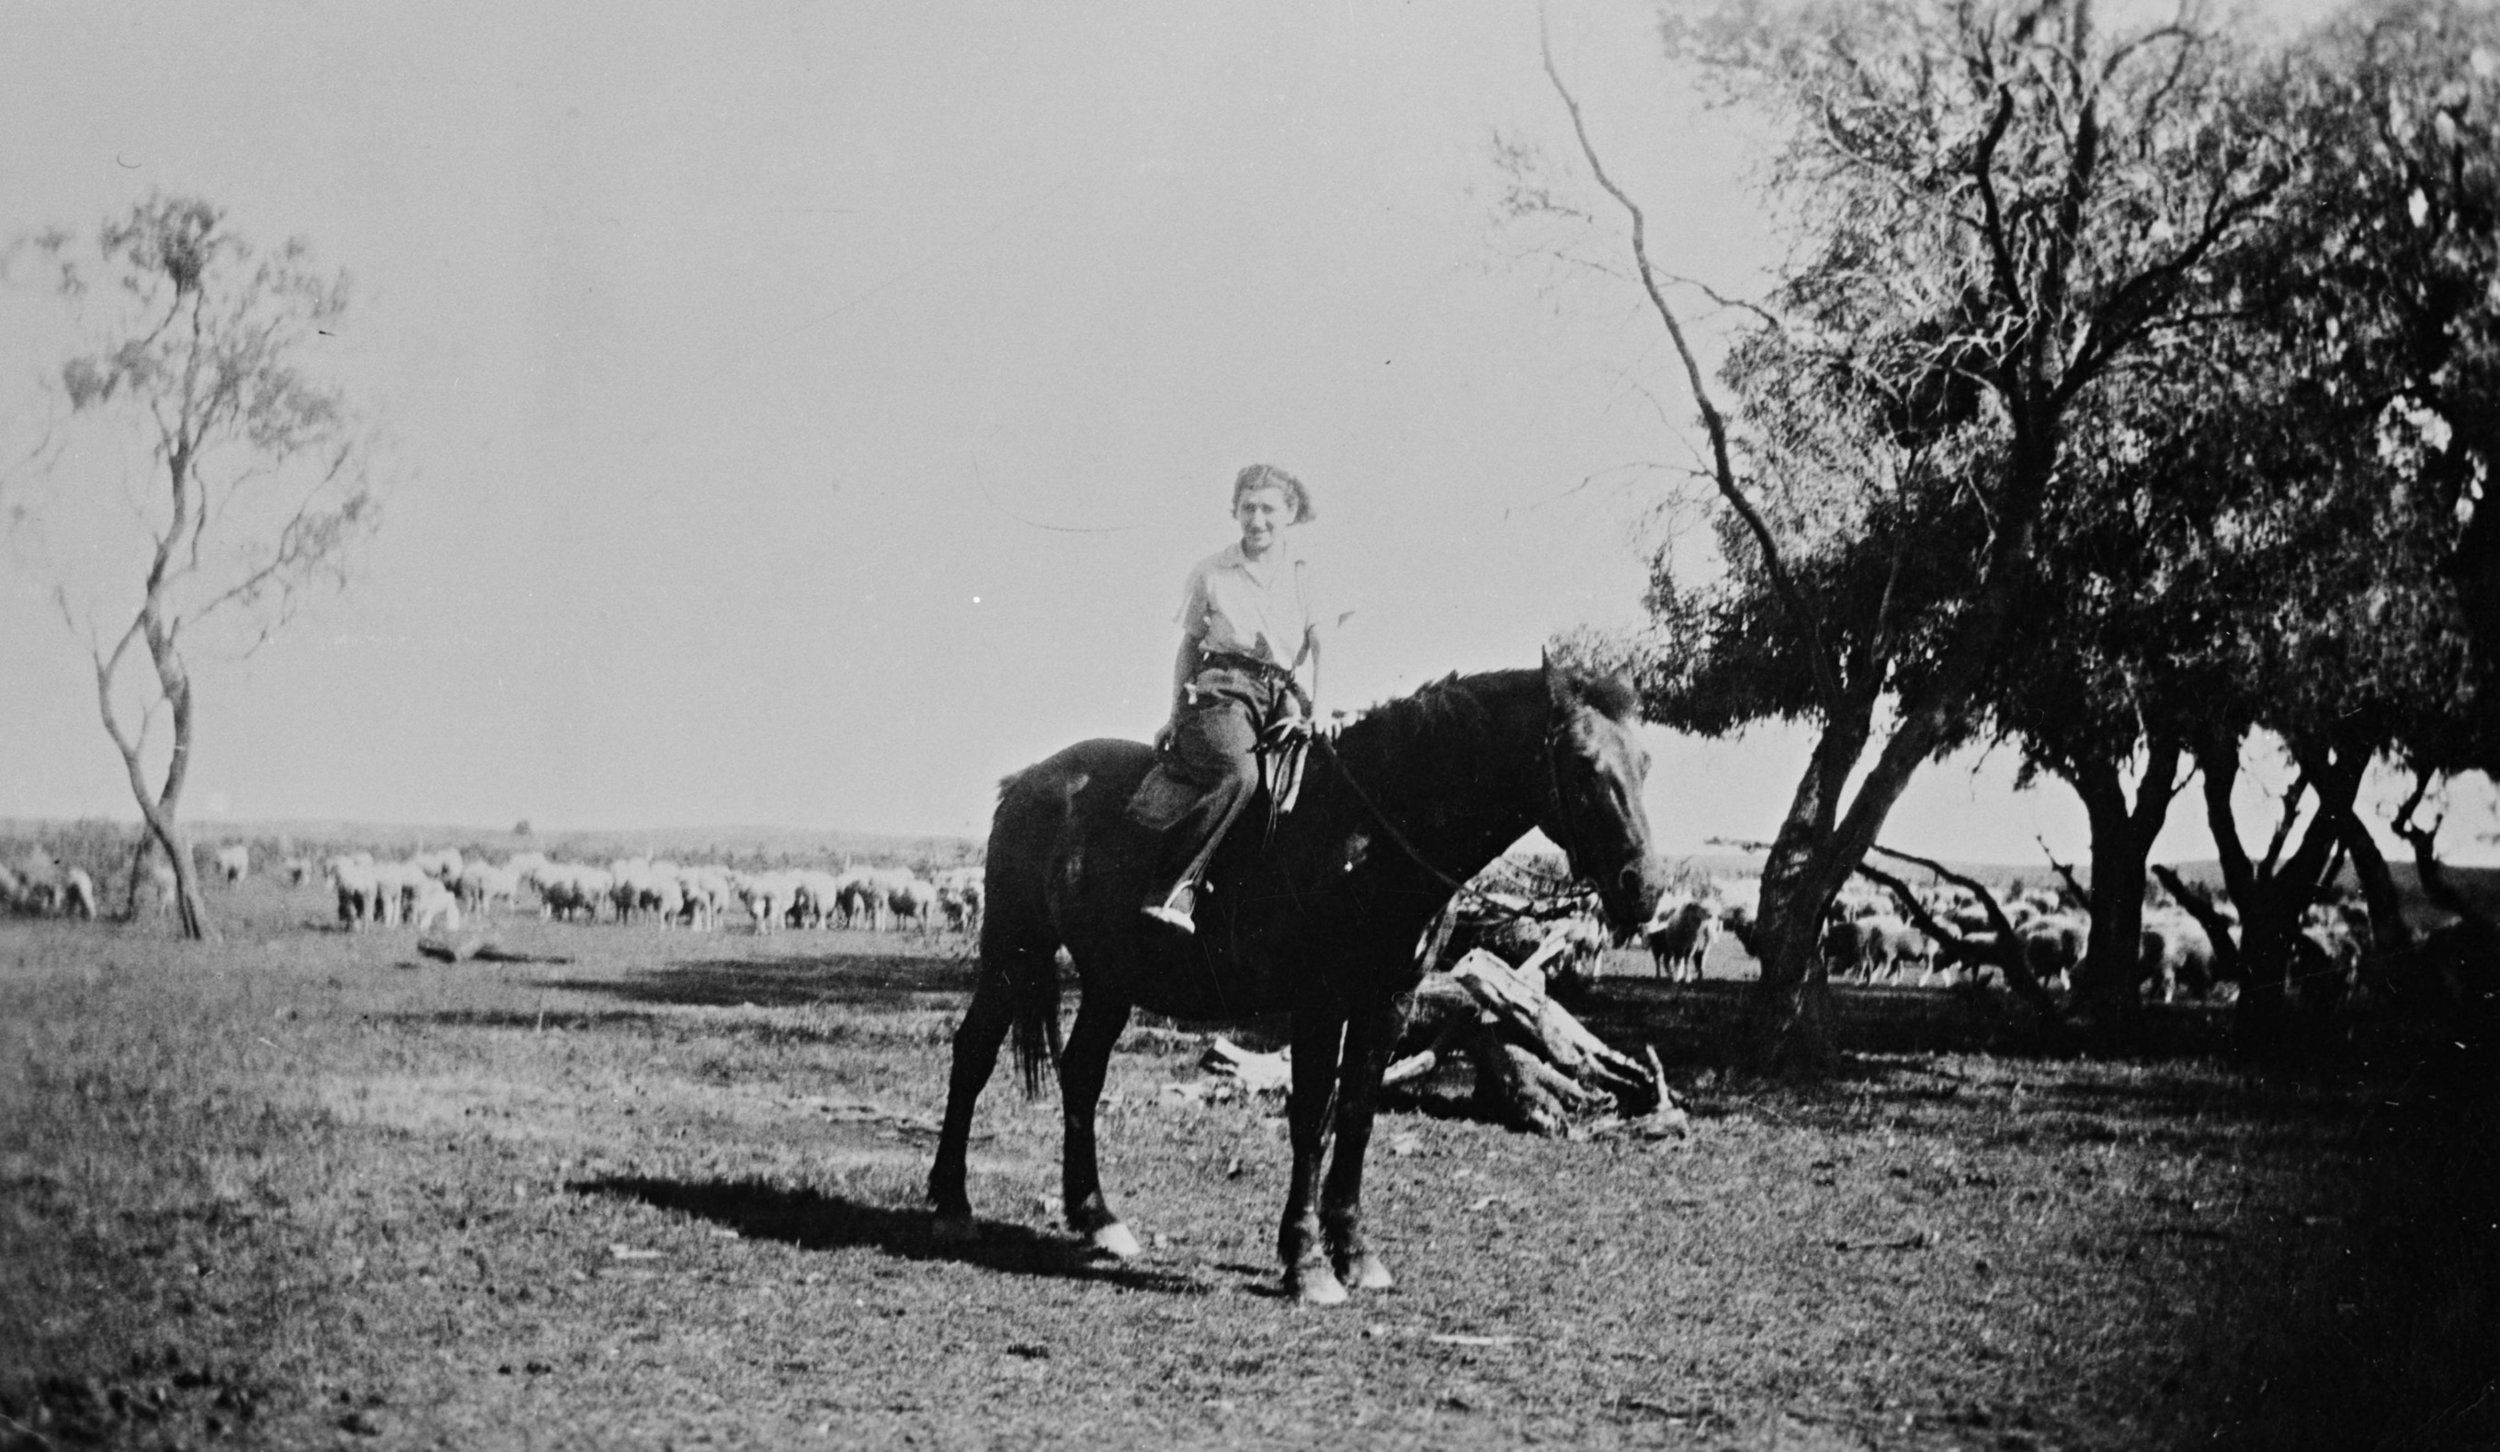 Woman Riding Horse , Agriculture, Victoria, 1931: The Biggest Family Album in Australia, Source: Museums Victoria, Photographer: Unknown.